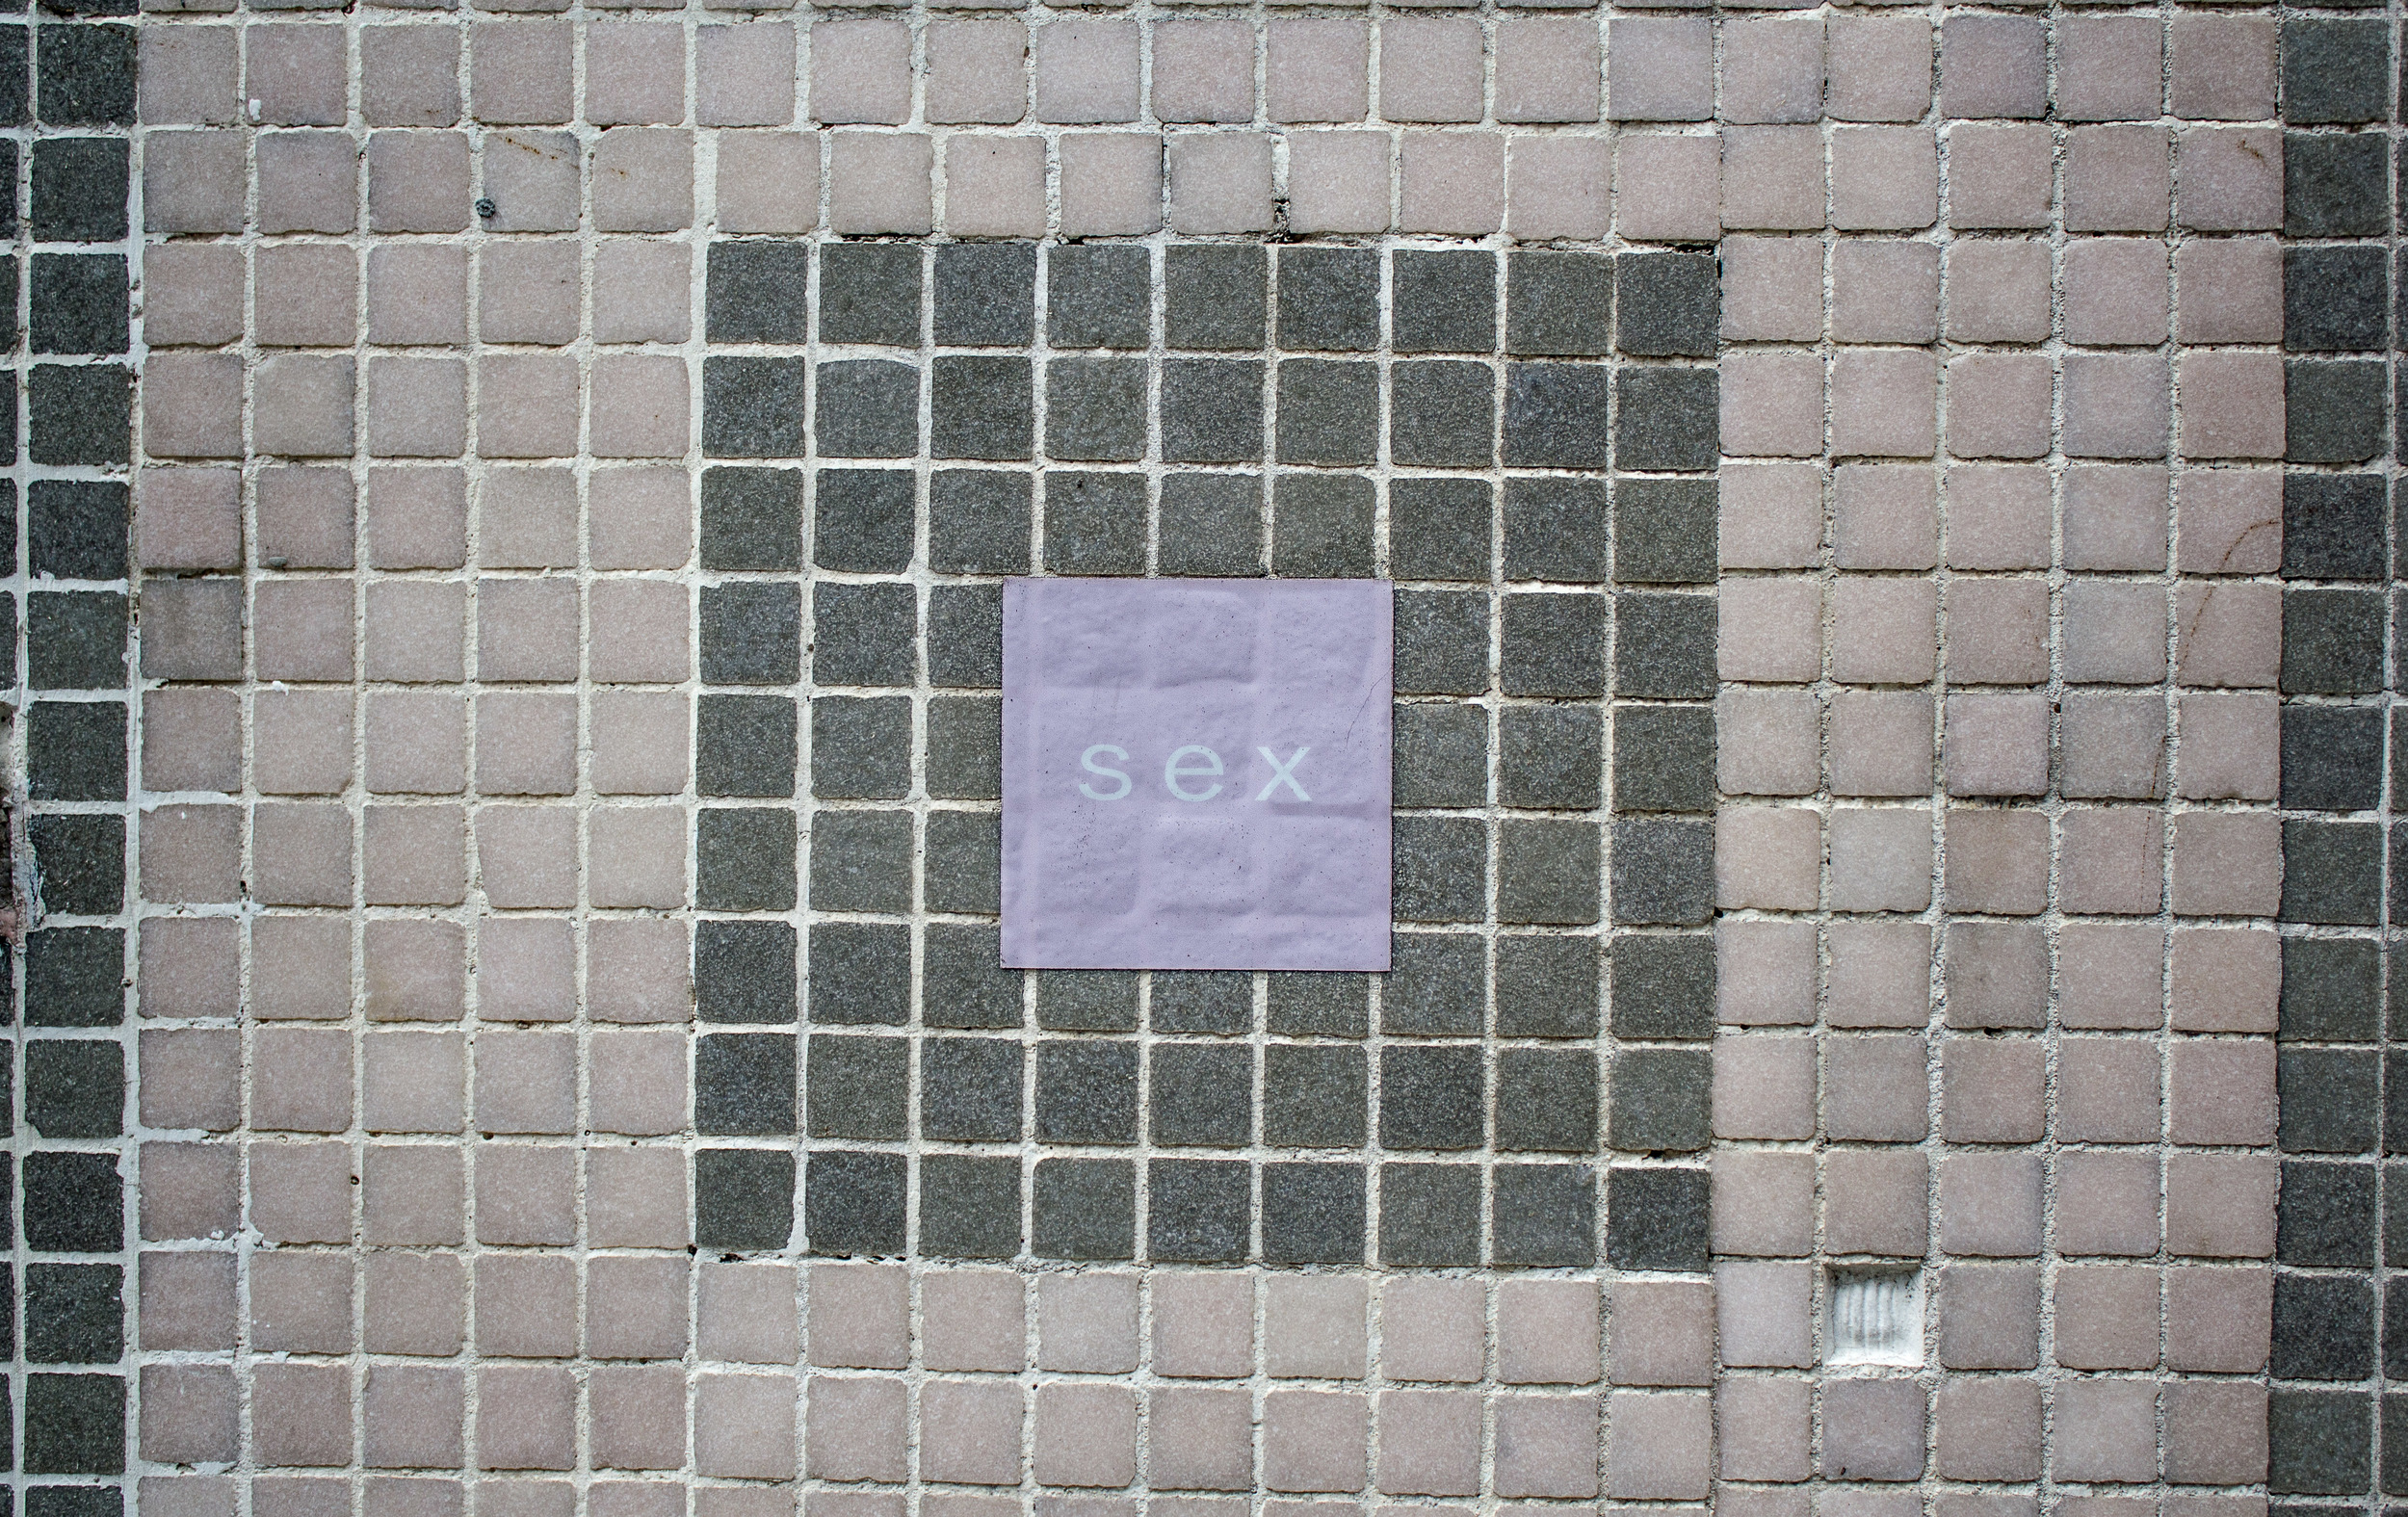 Sex sticker